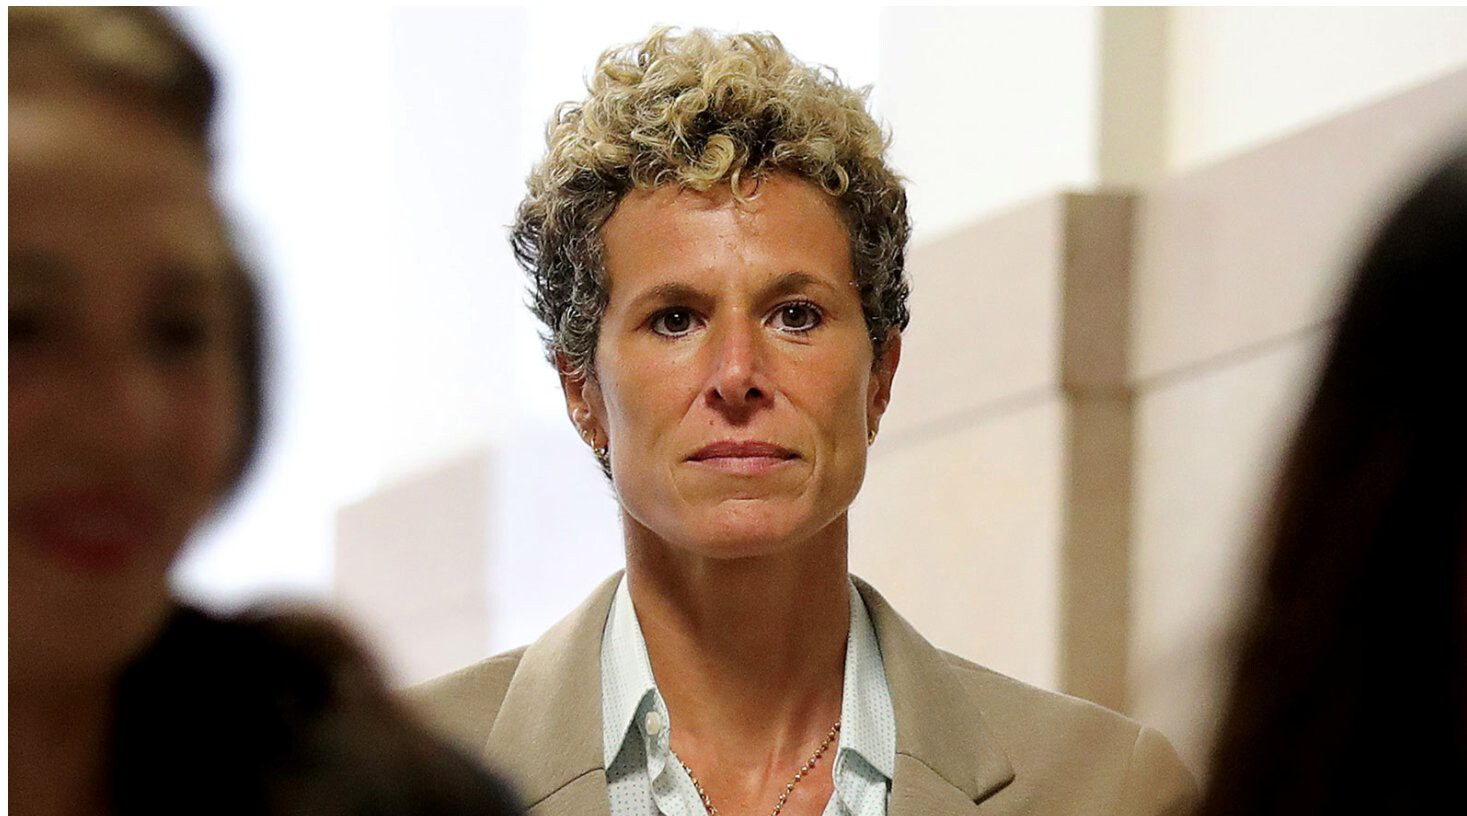 <i>David Maialetti/Getty Images</i><br/>Andrea Constand and her attorneys said the decision to vacate Cosby's conviction is disappointing and discouraging to survivors of sexual assault. She is seen here in 2018.